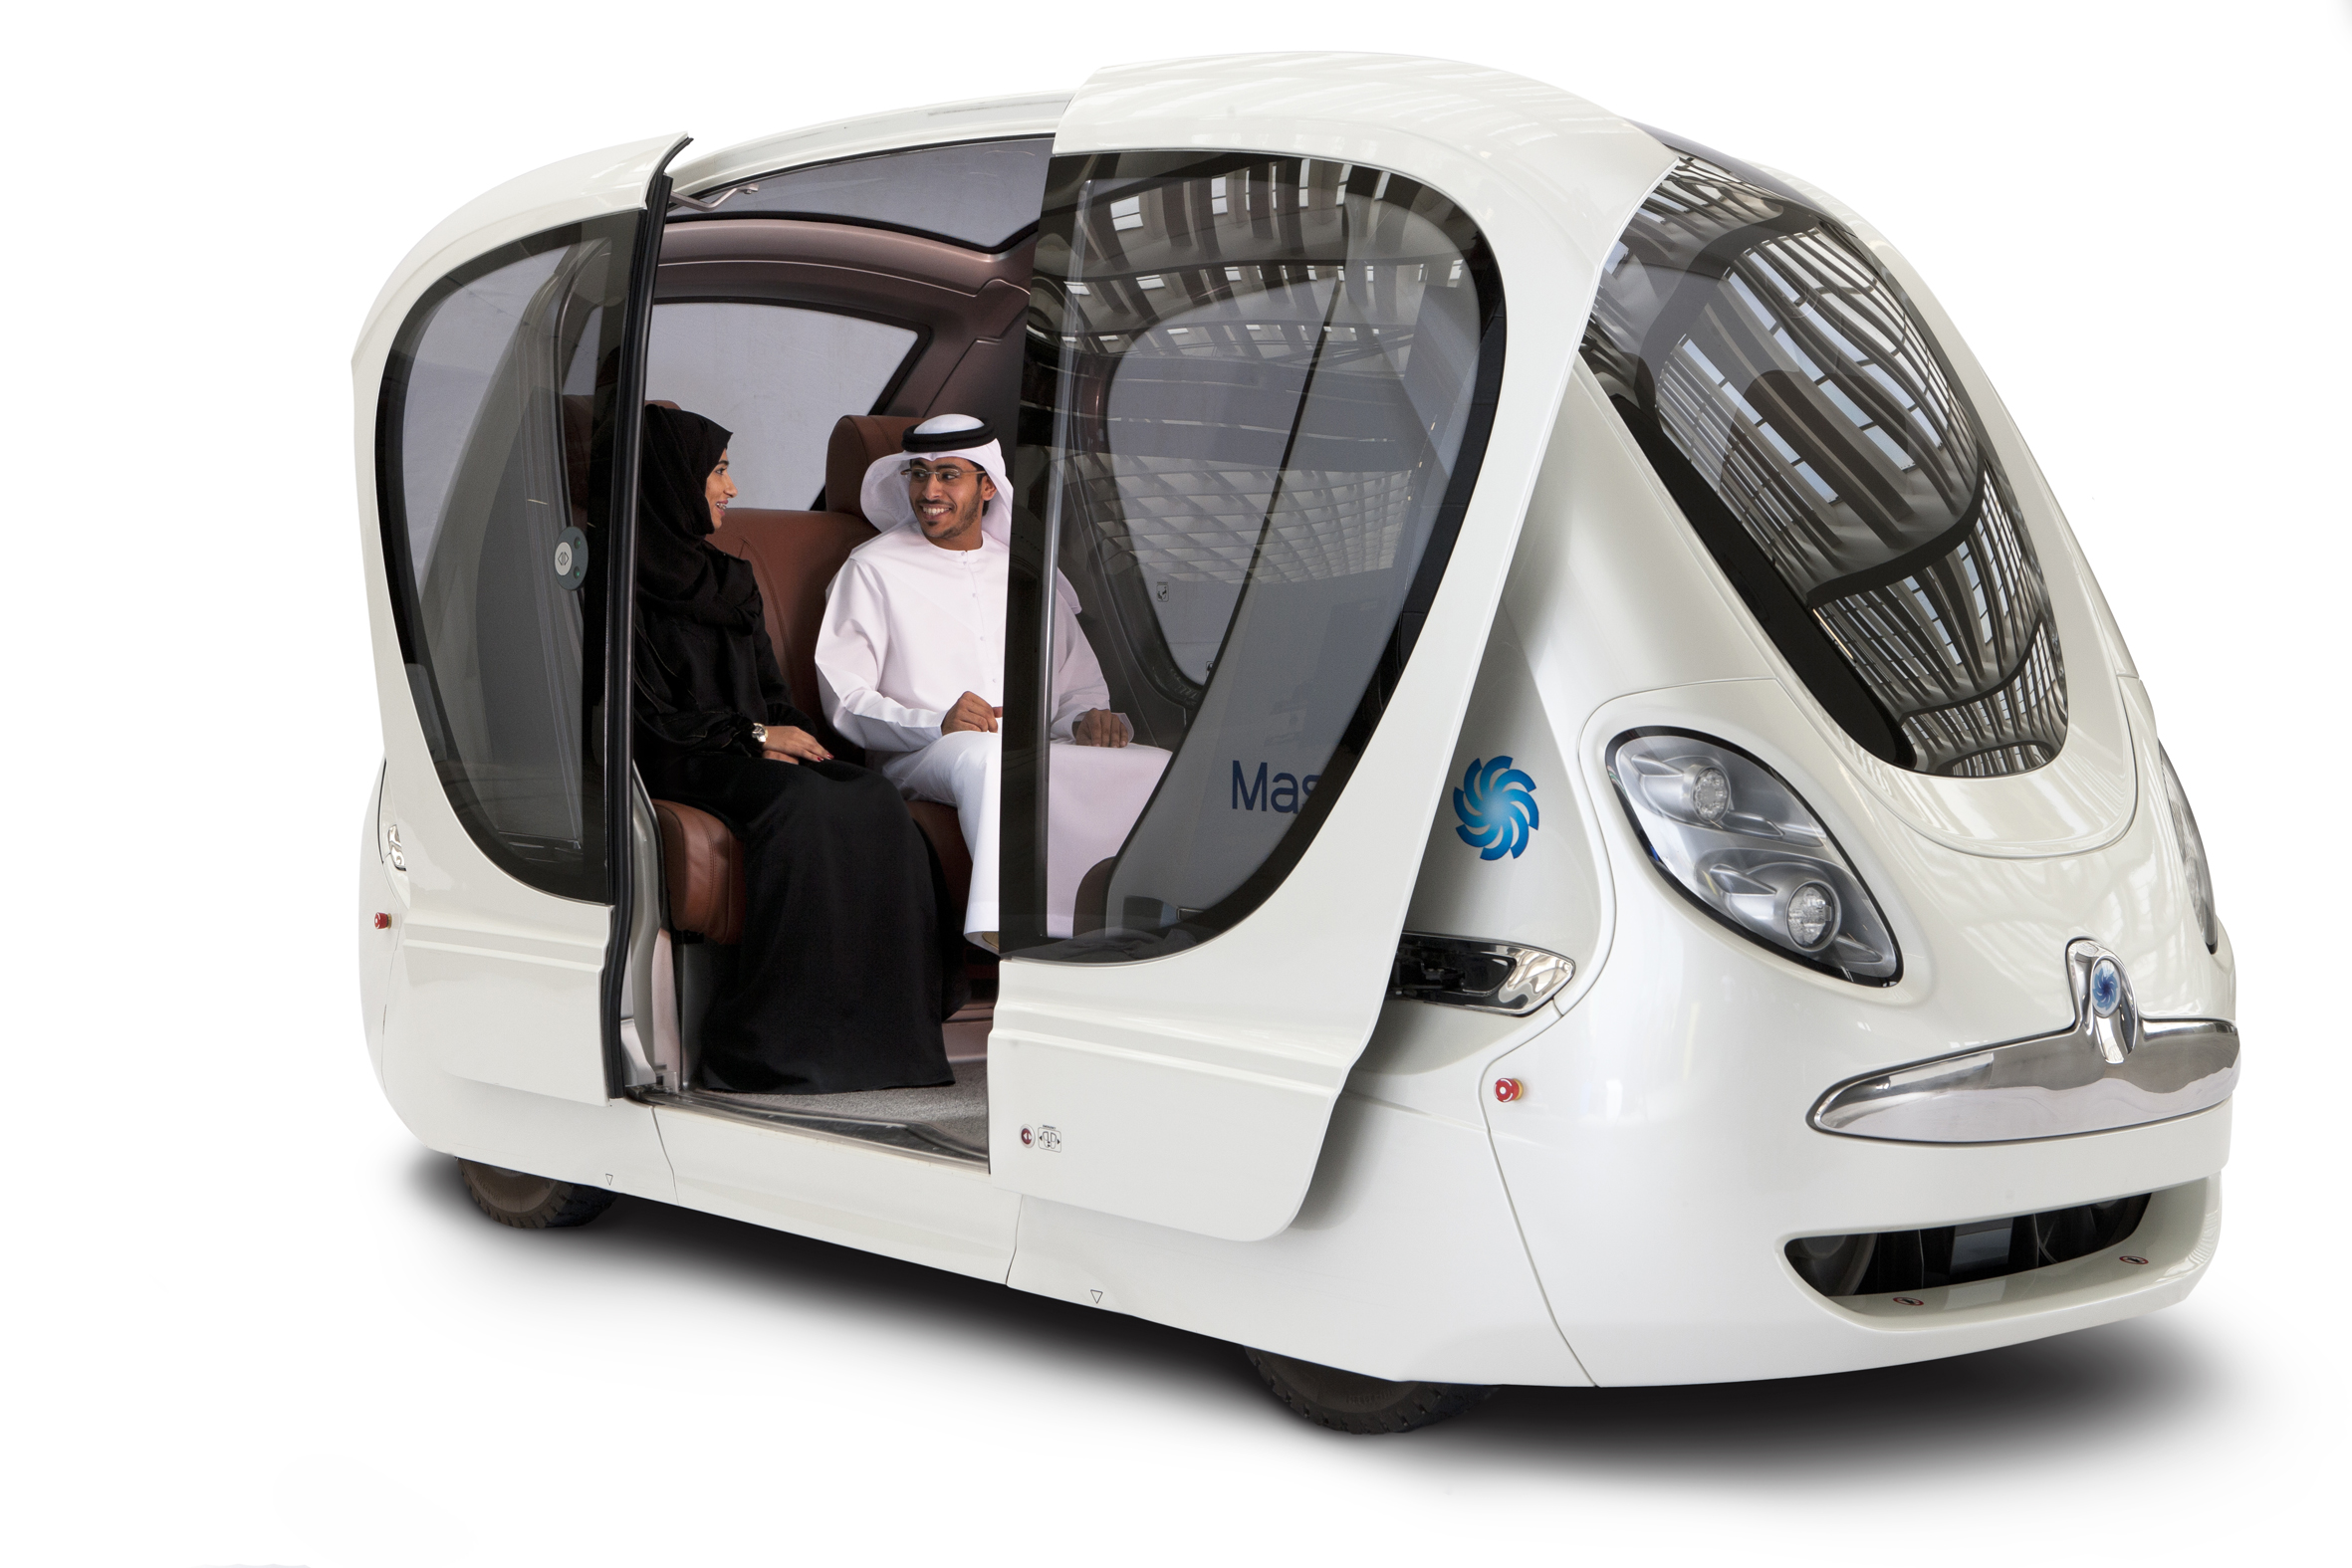 Image showing the Personal Rapid Transit System at Masdar City